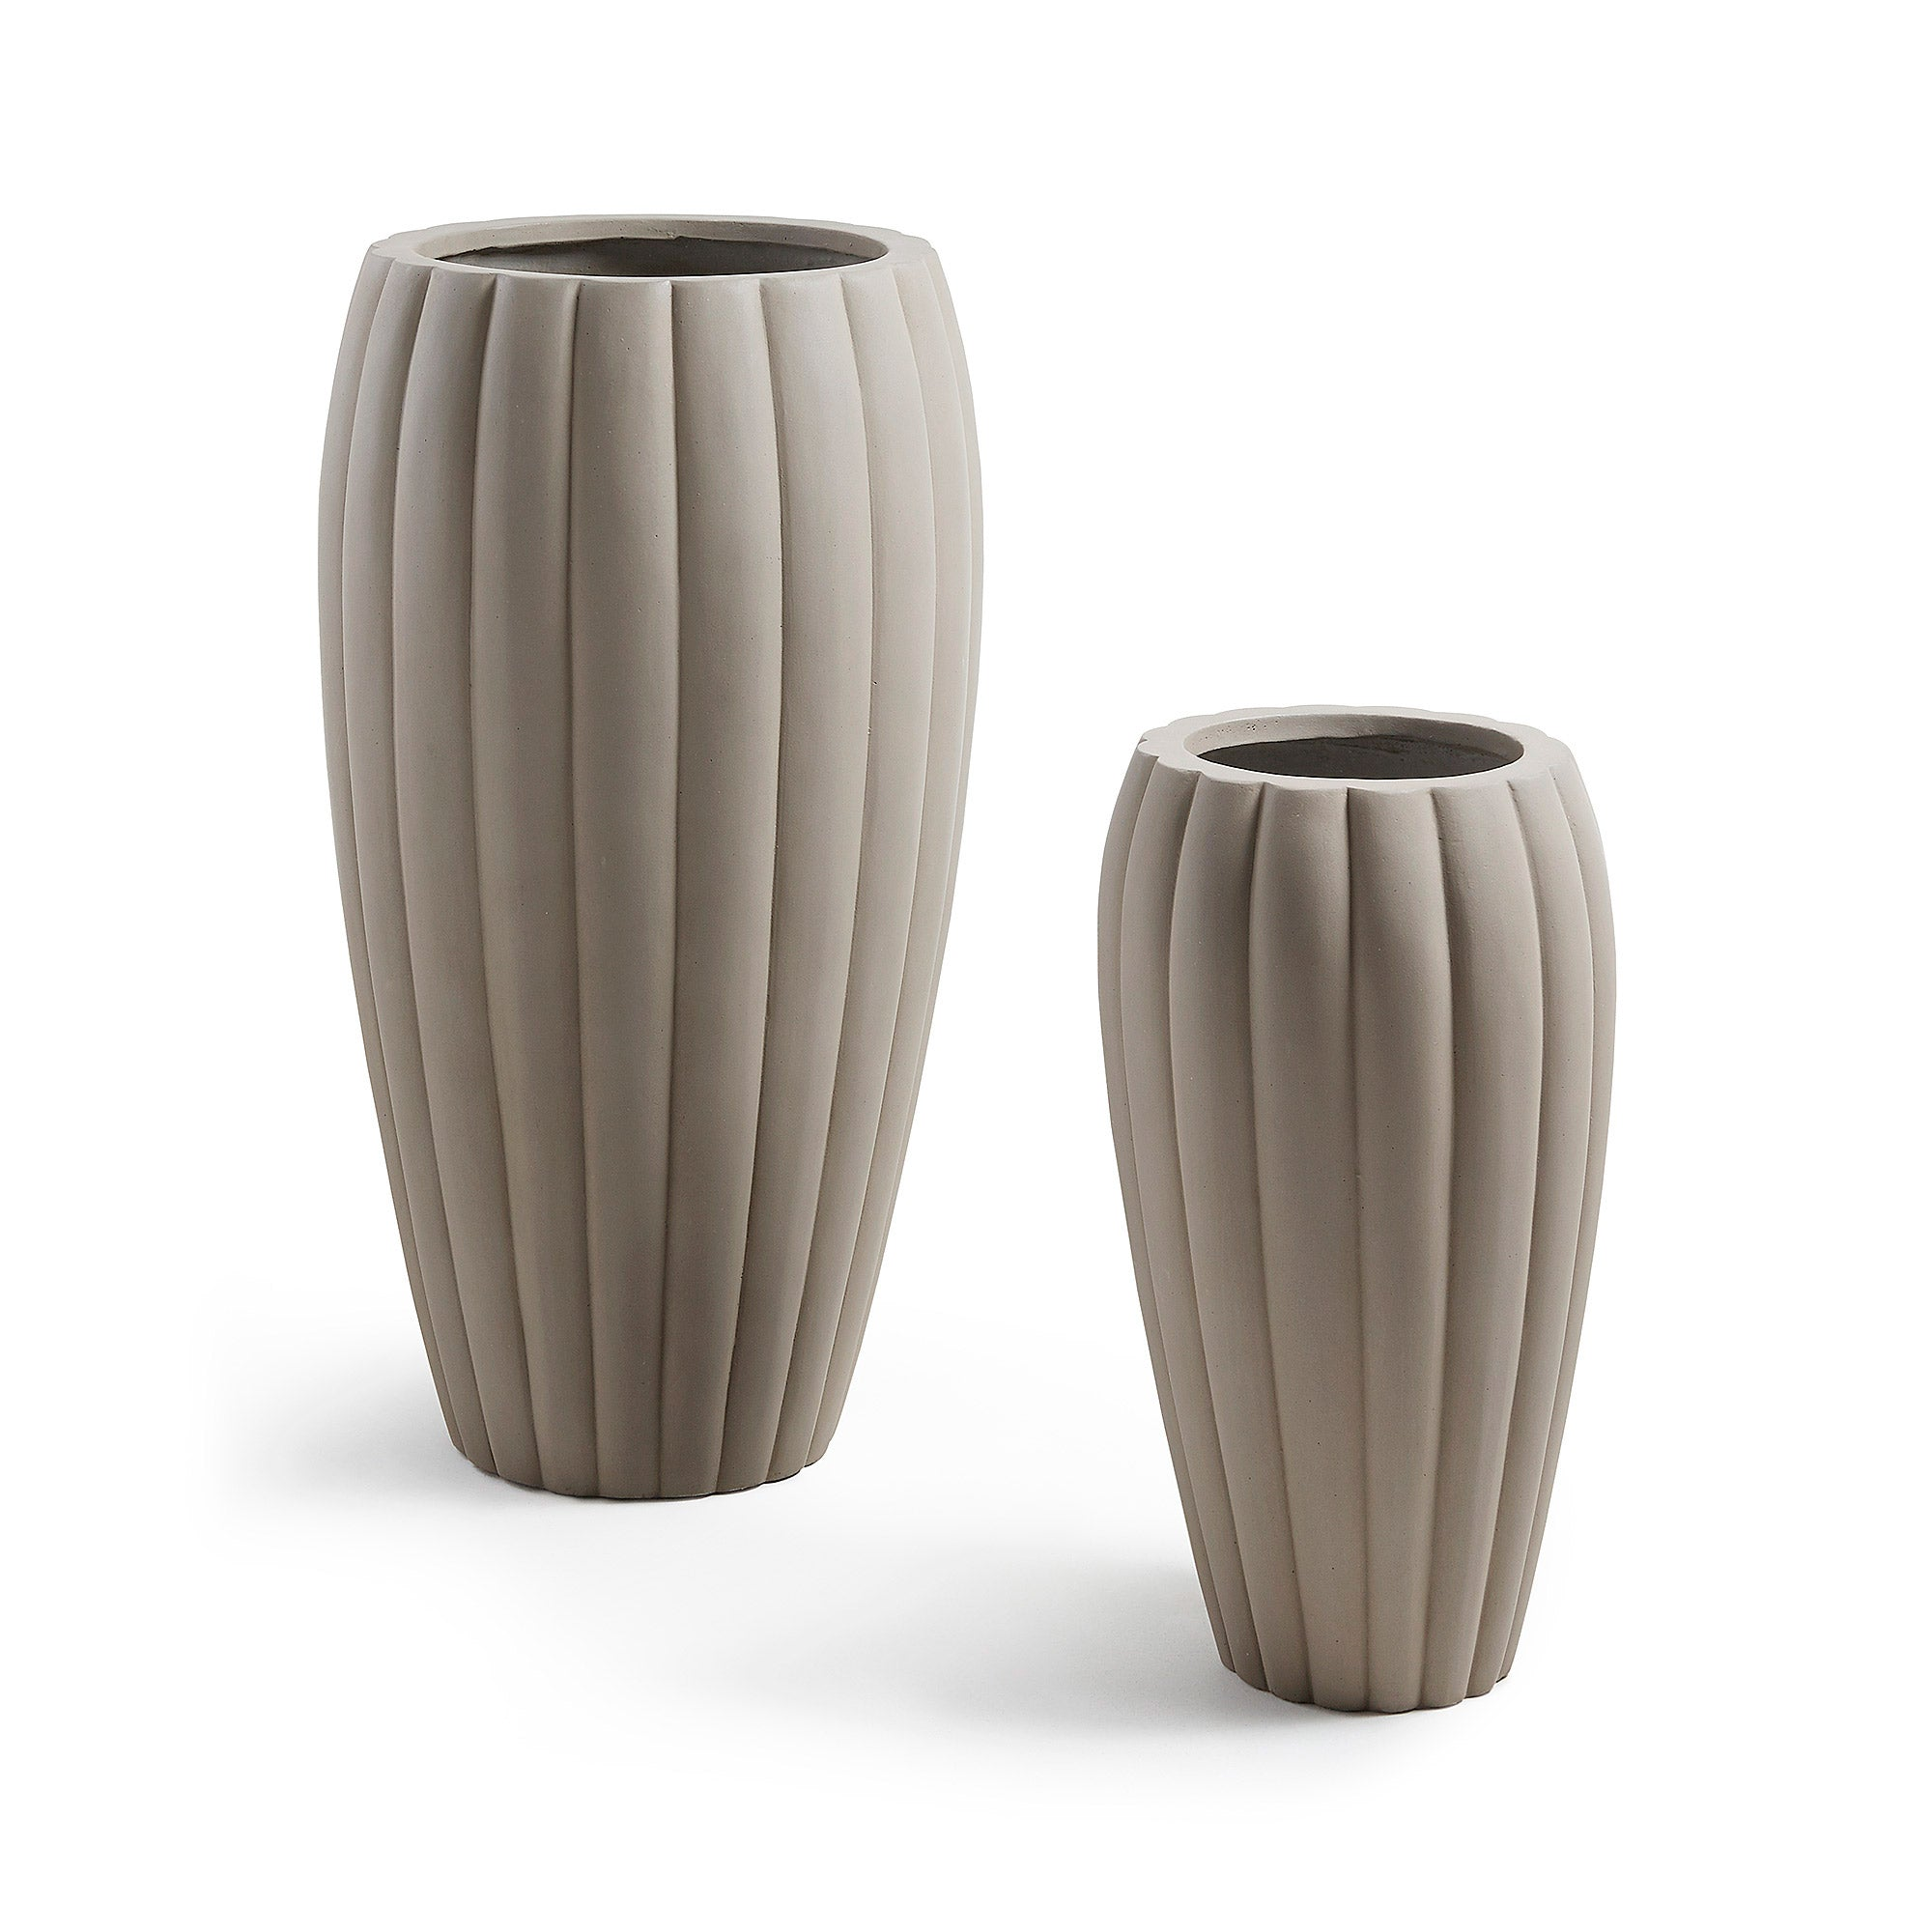 Linn Set 2 Vases Cement Light Grey, Vase - Home-Buy Interiors